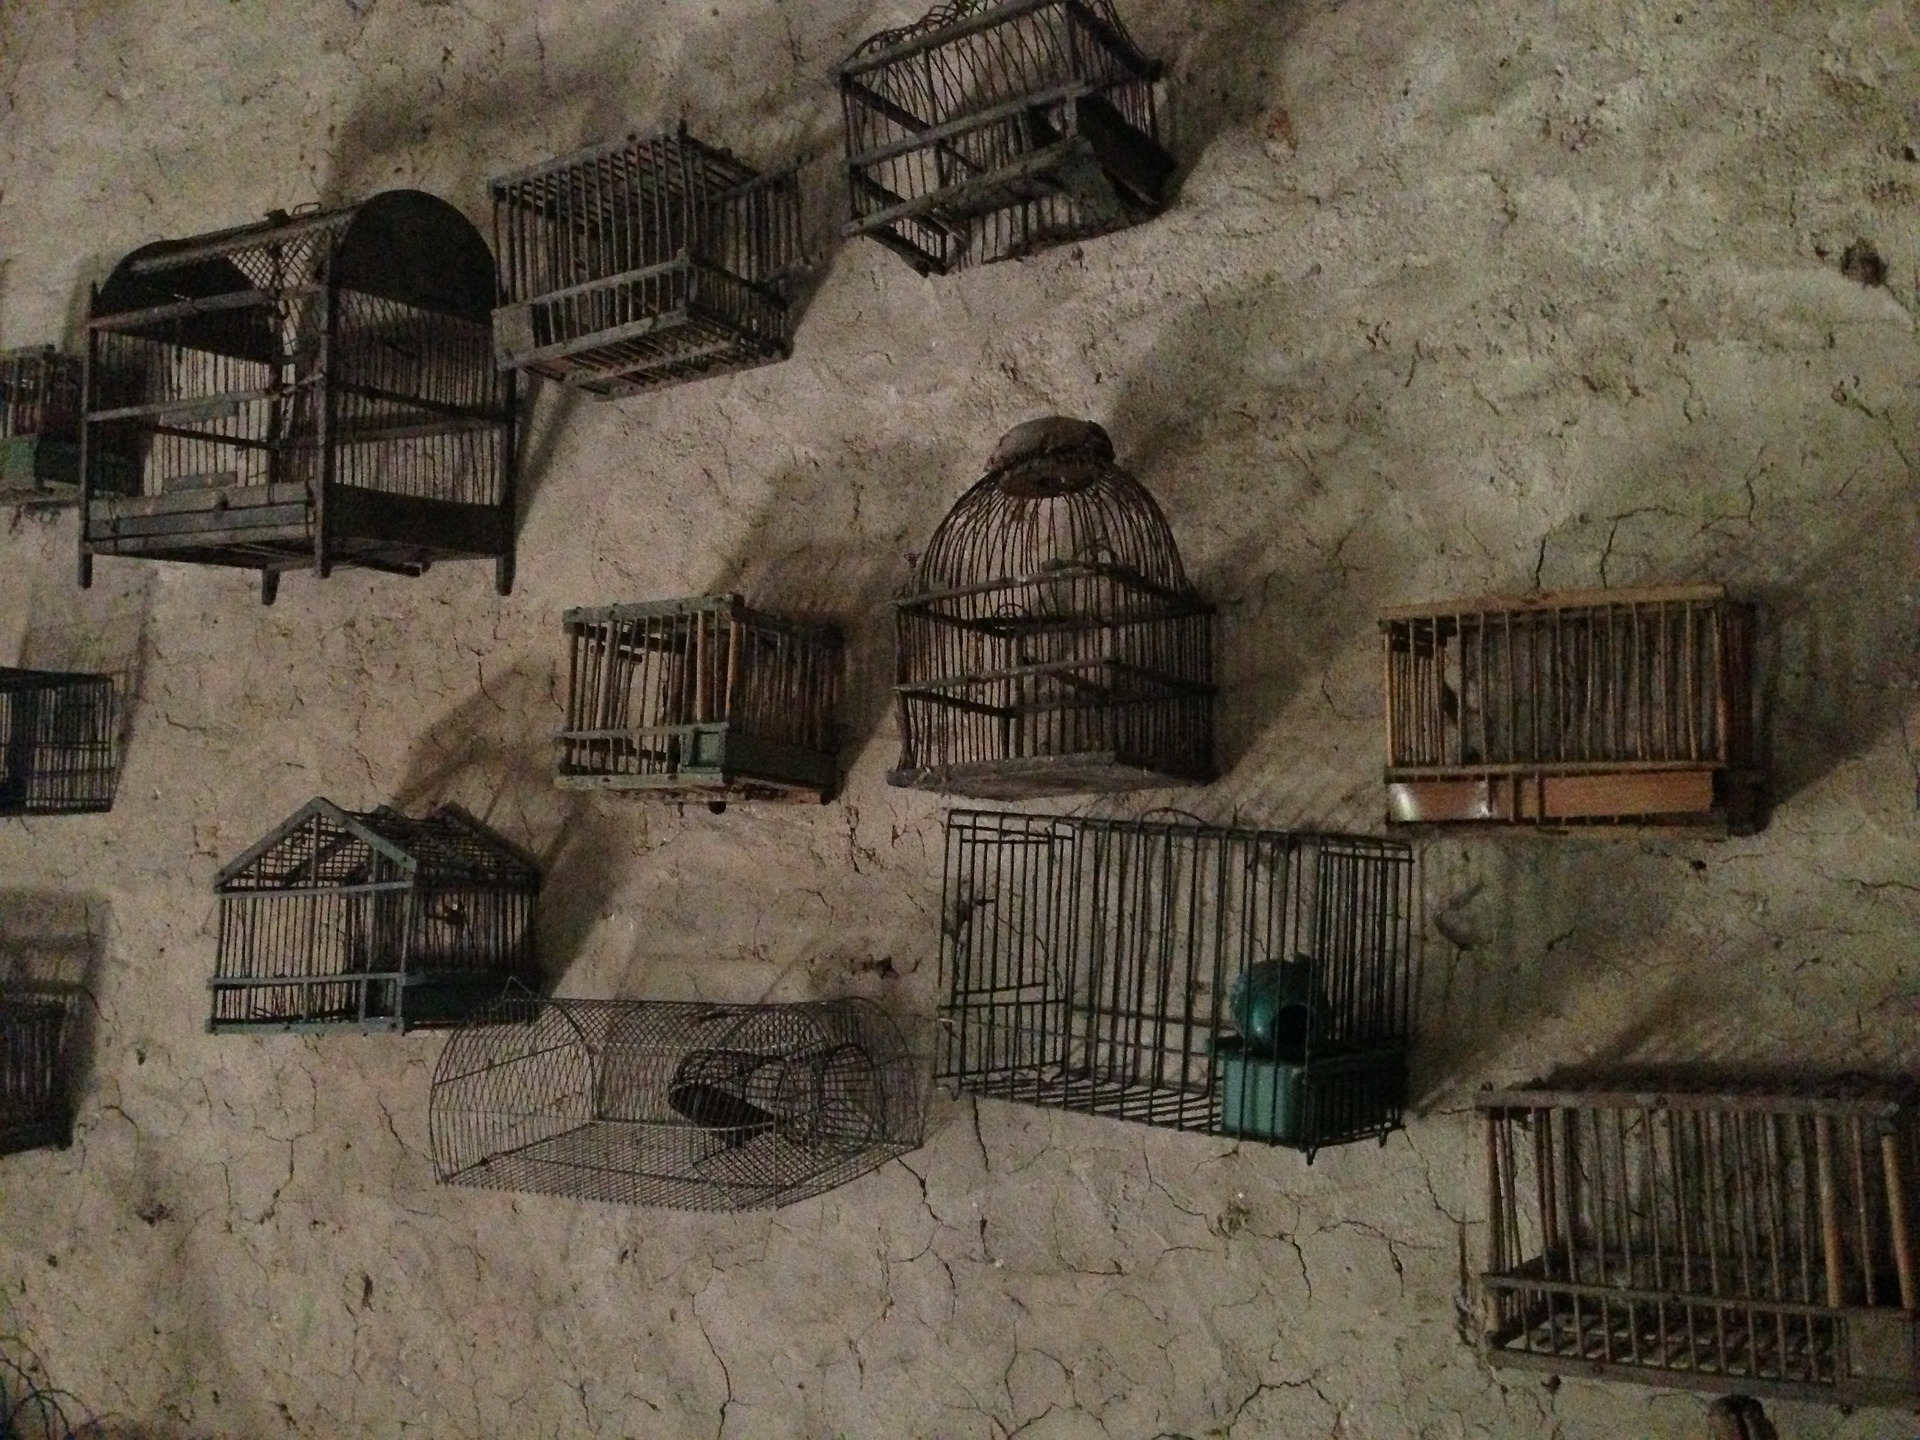 cages-363126_1920.jpg